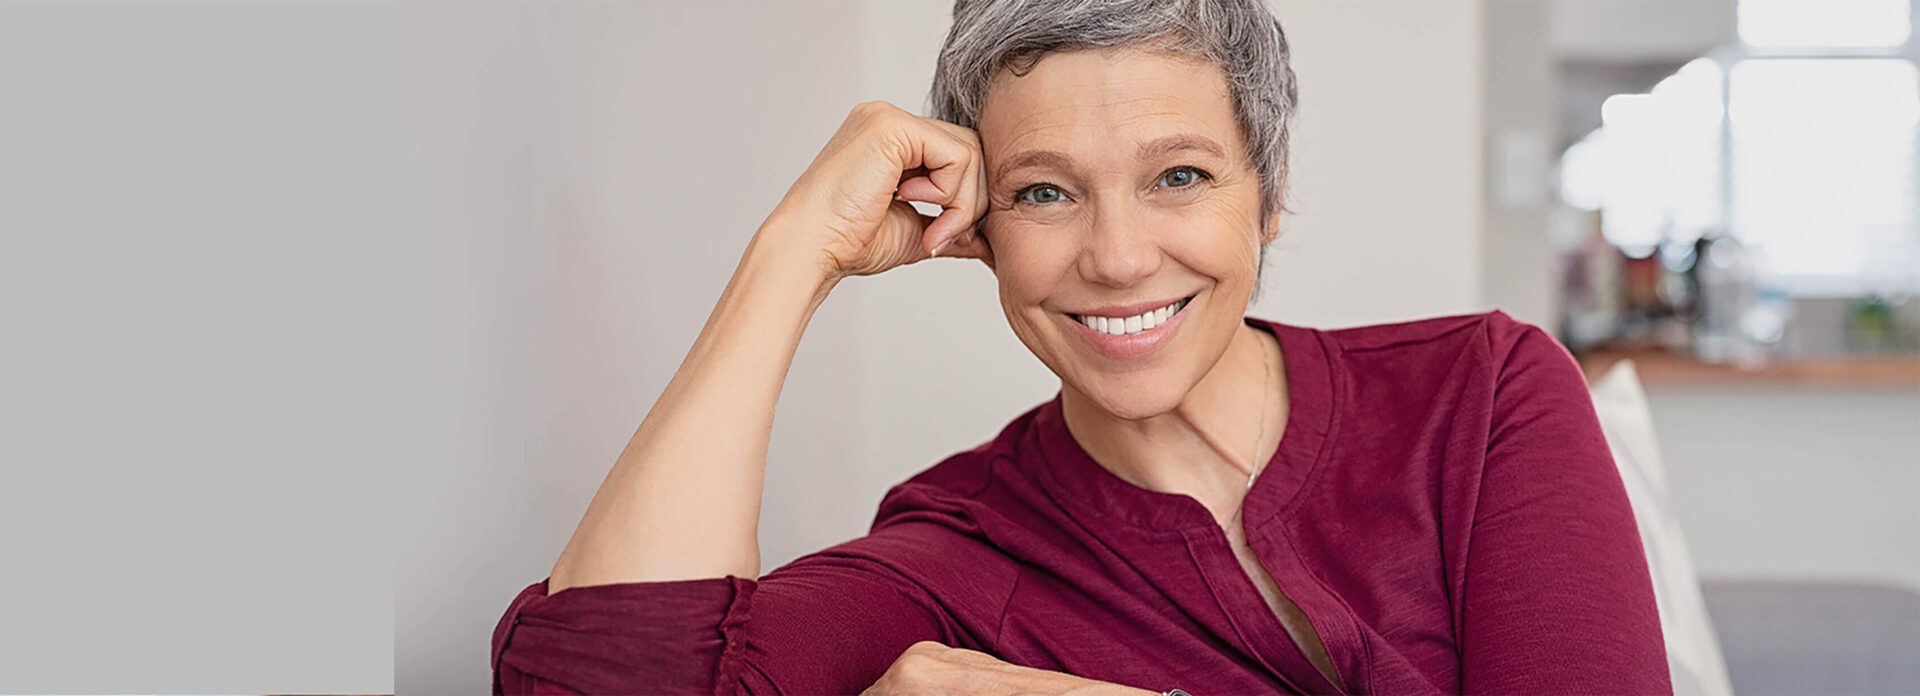 Dental Implants in the DFW